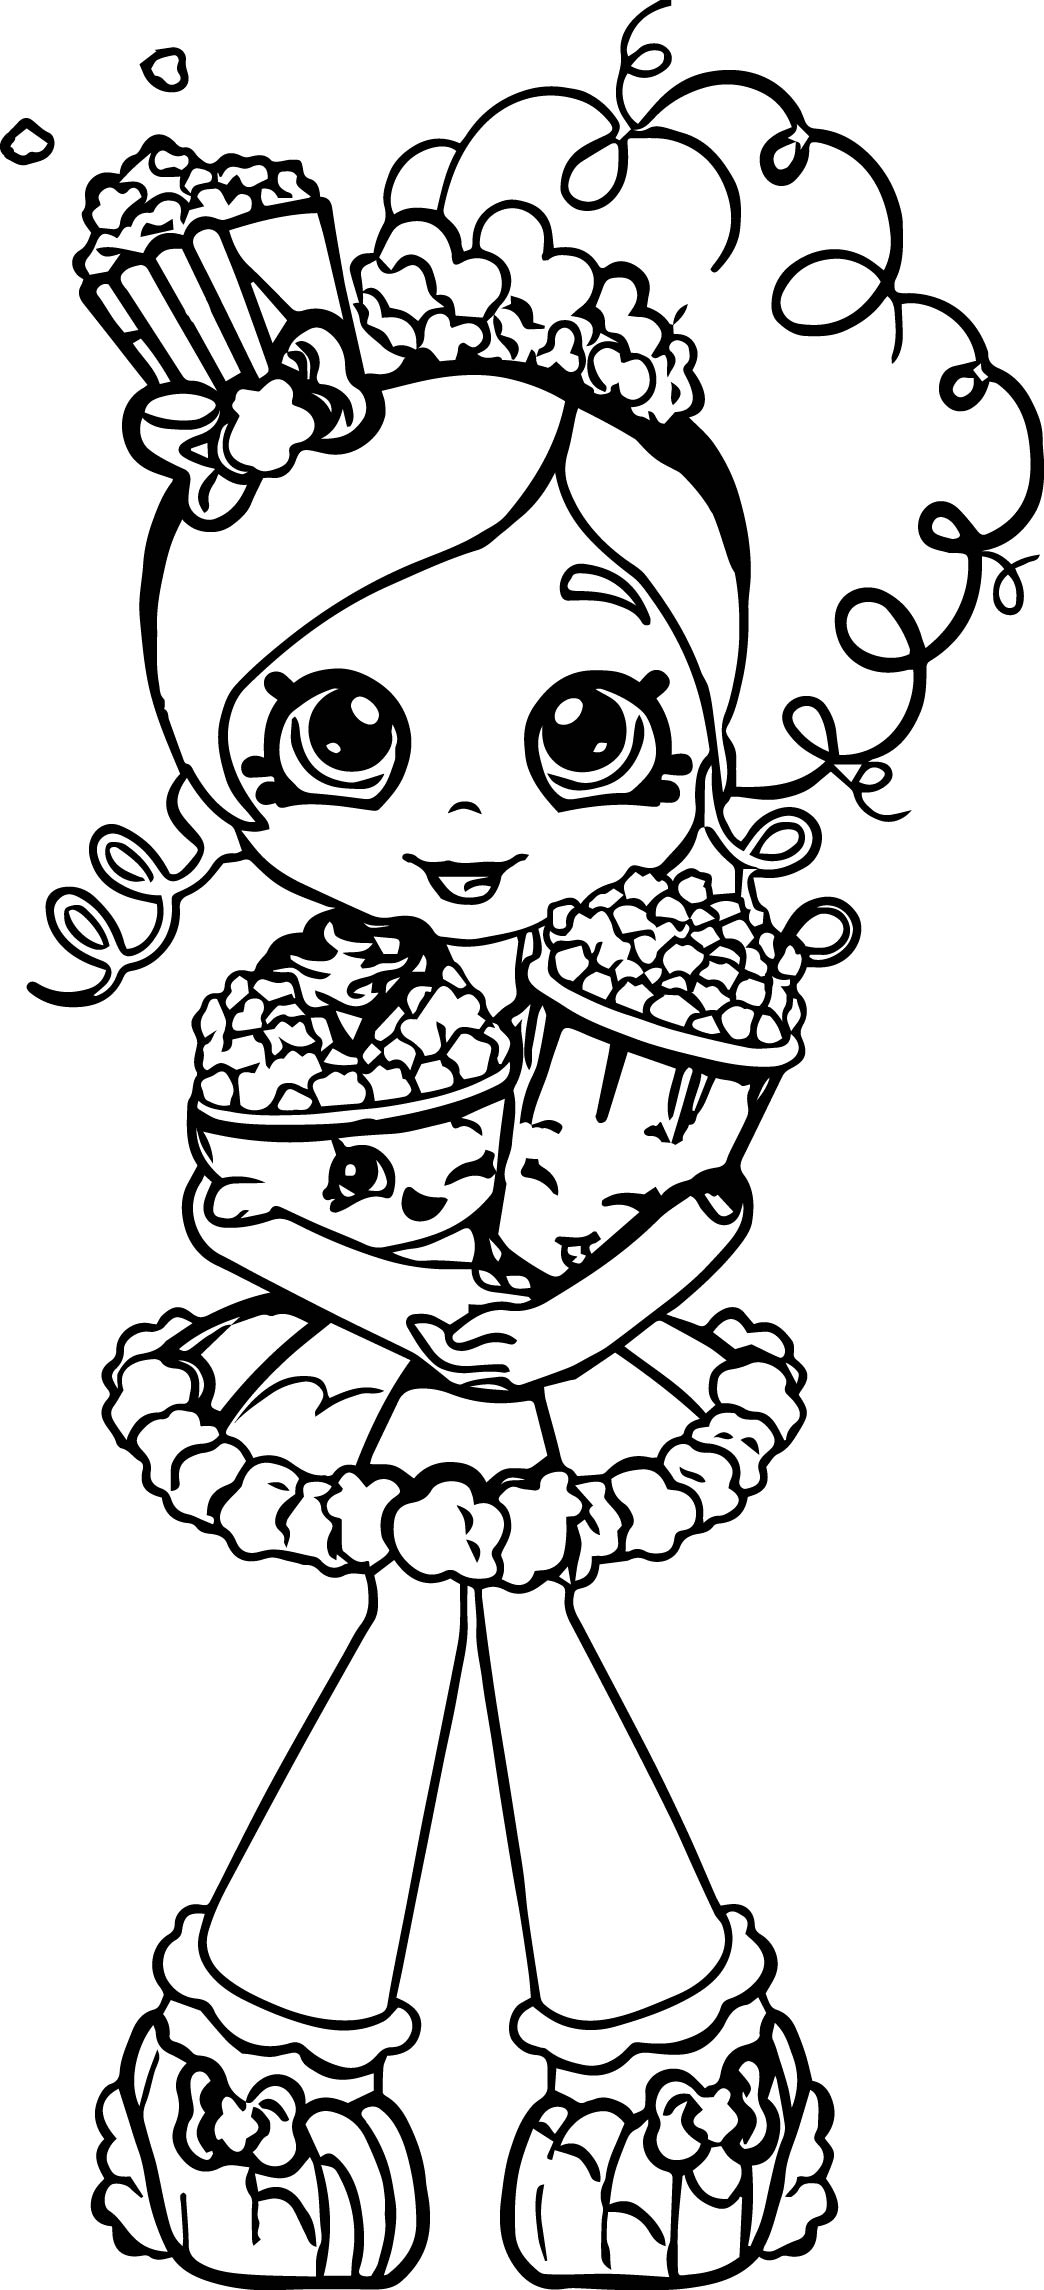 Shopkin Girl Coloring Pages